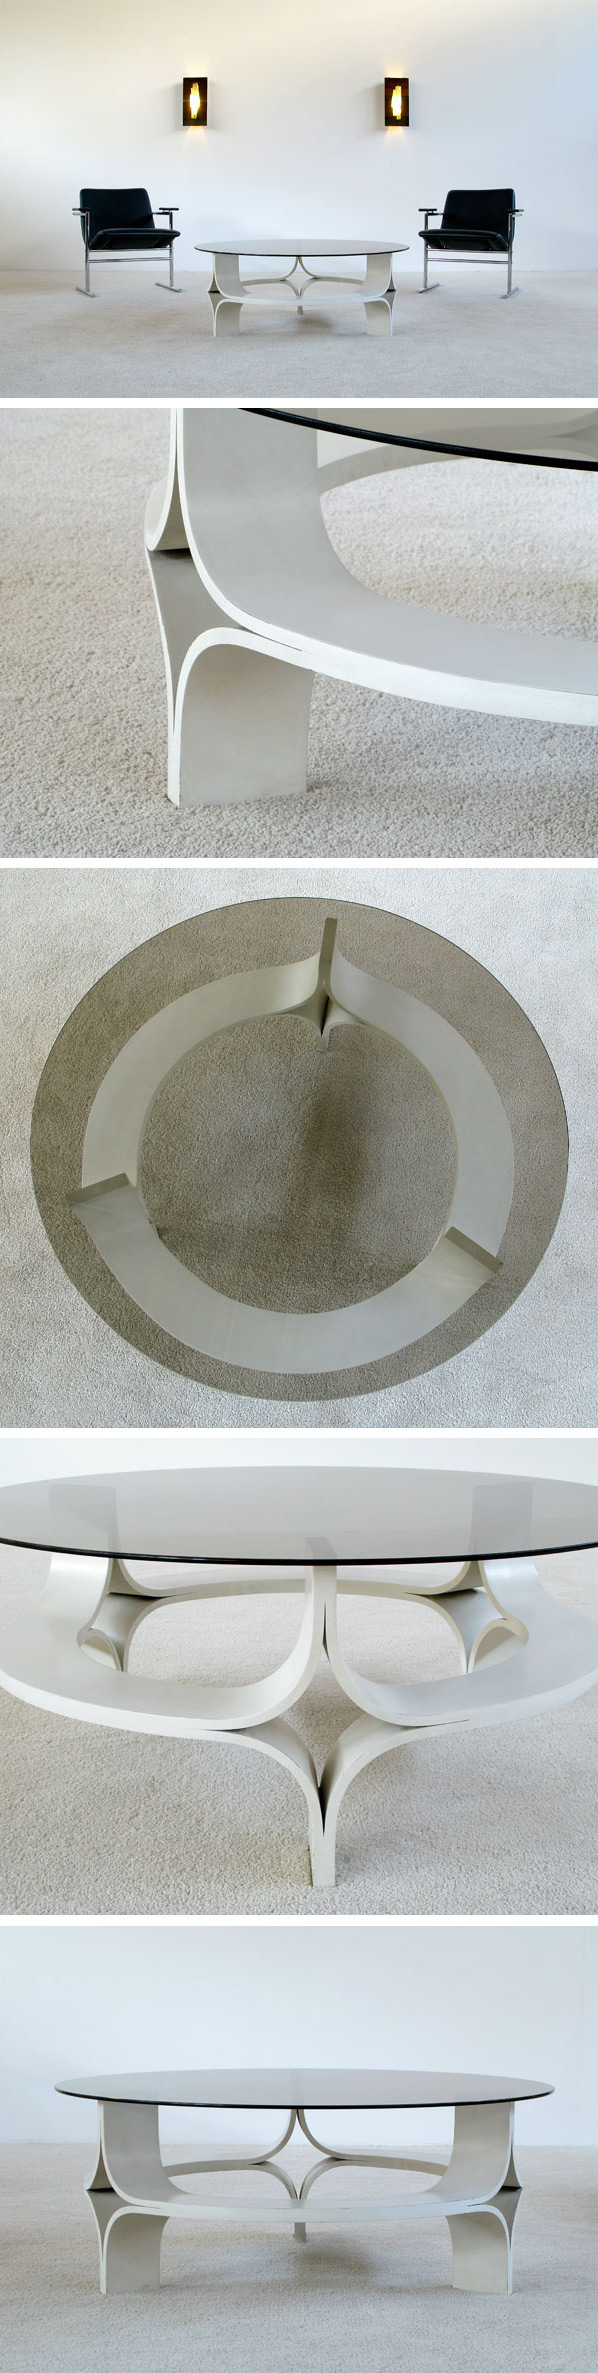 1967 decorative white plywood coffee table Large